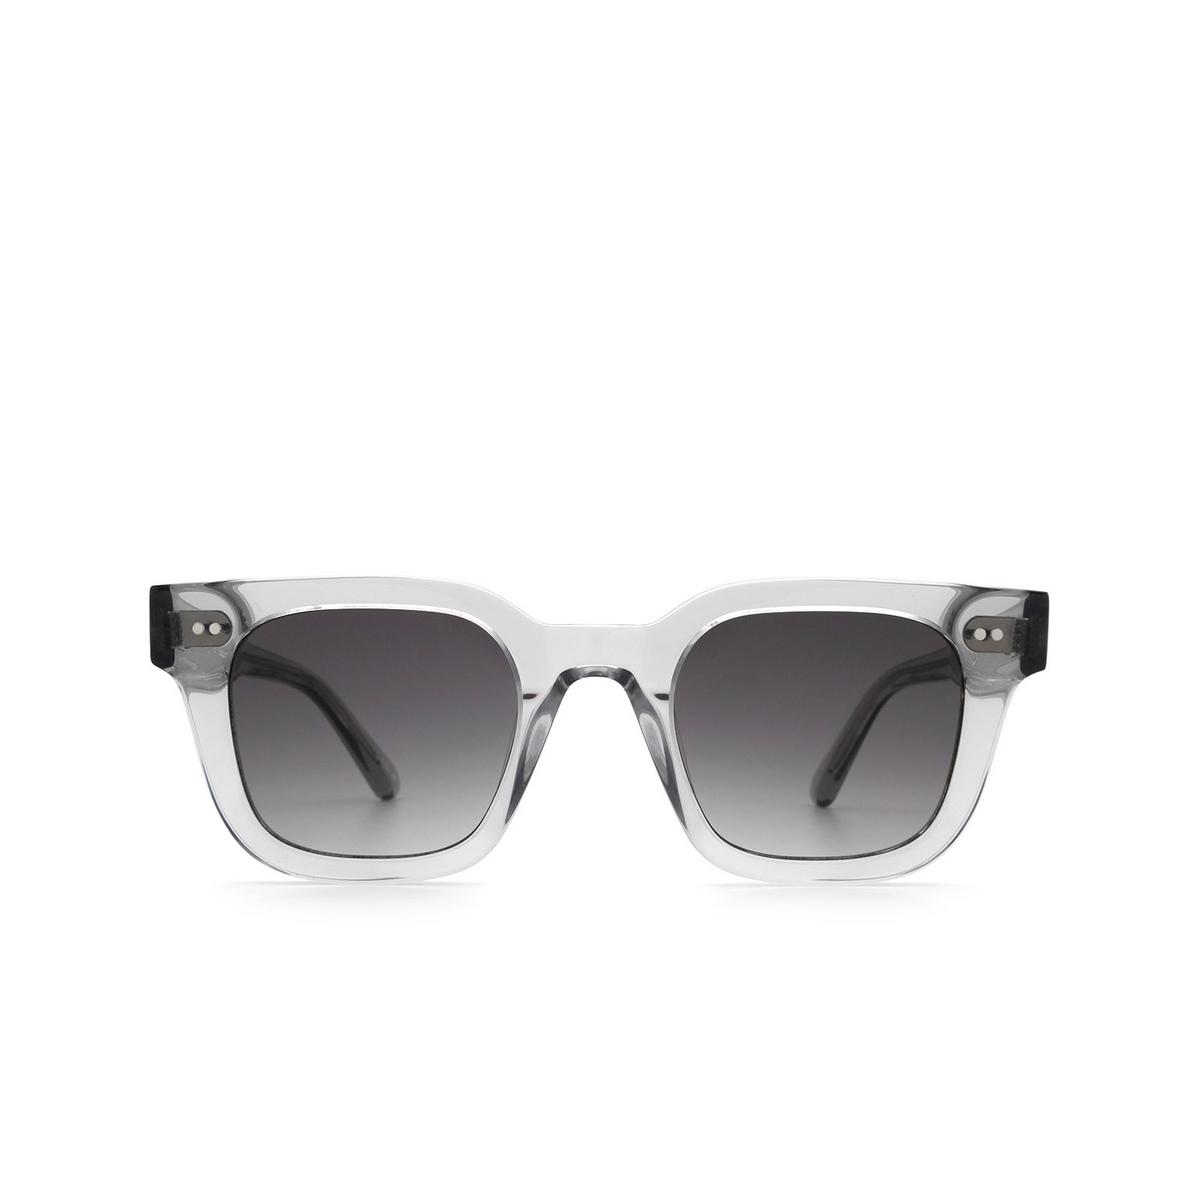 Chimi® Square Sunglasses: 04 color Grey - front view.